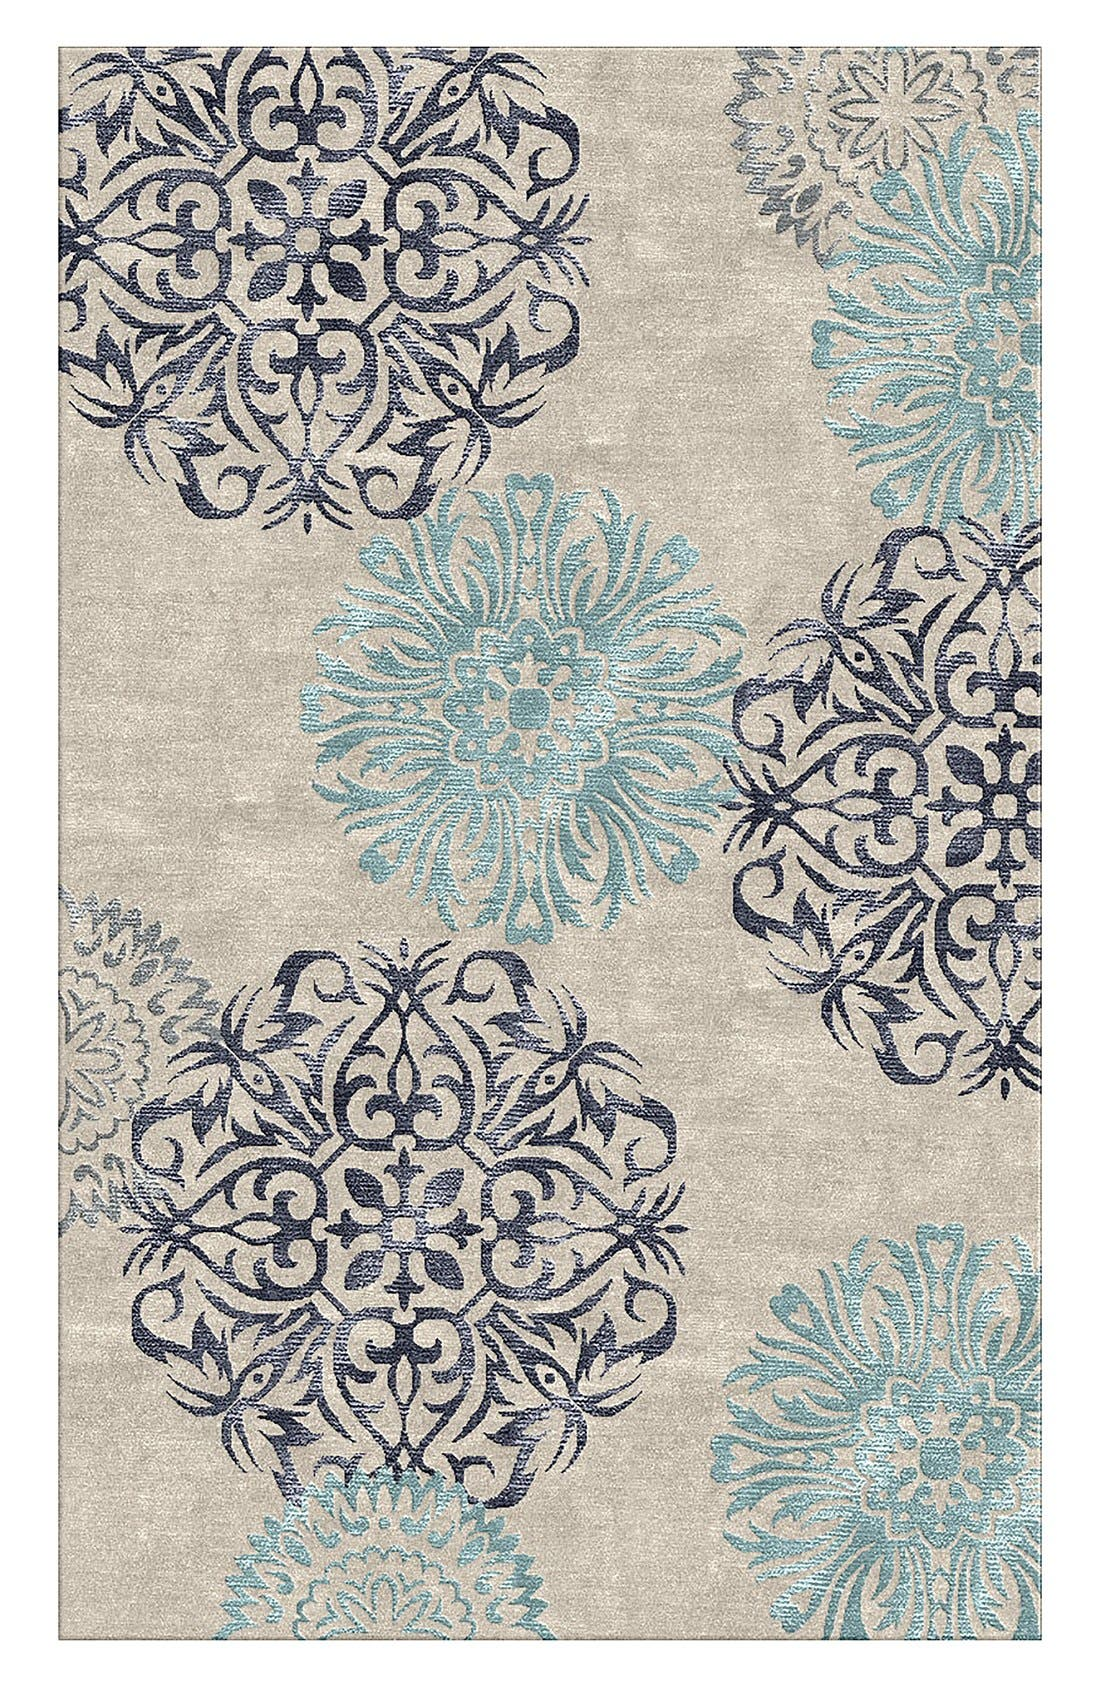 'Eden Harbor' Hand Tufted Wool Area Rug,                             Alternate thumbnail 8, color,                             Navy/ Aqua/ Grey